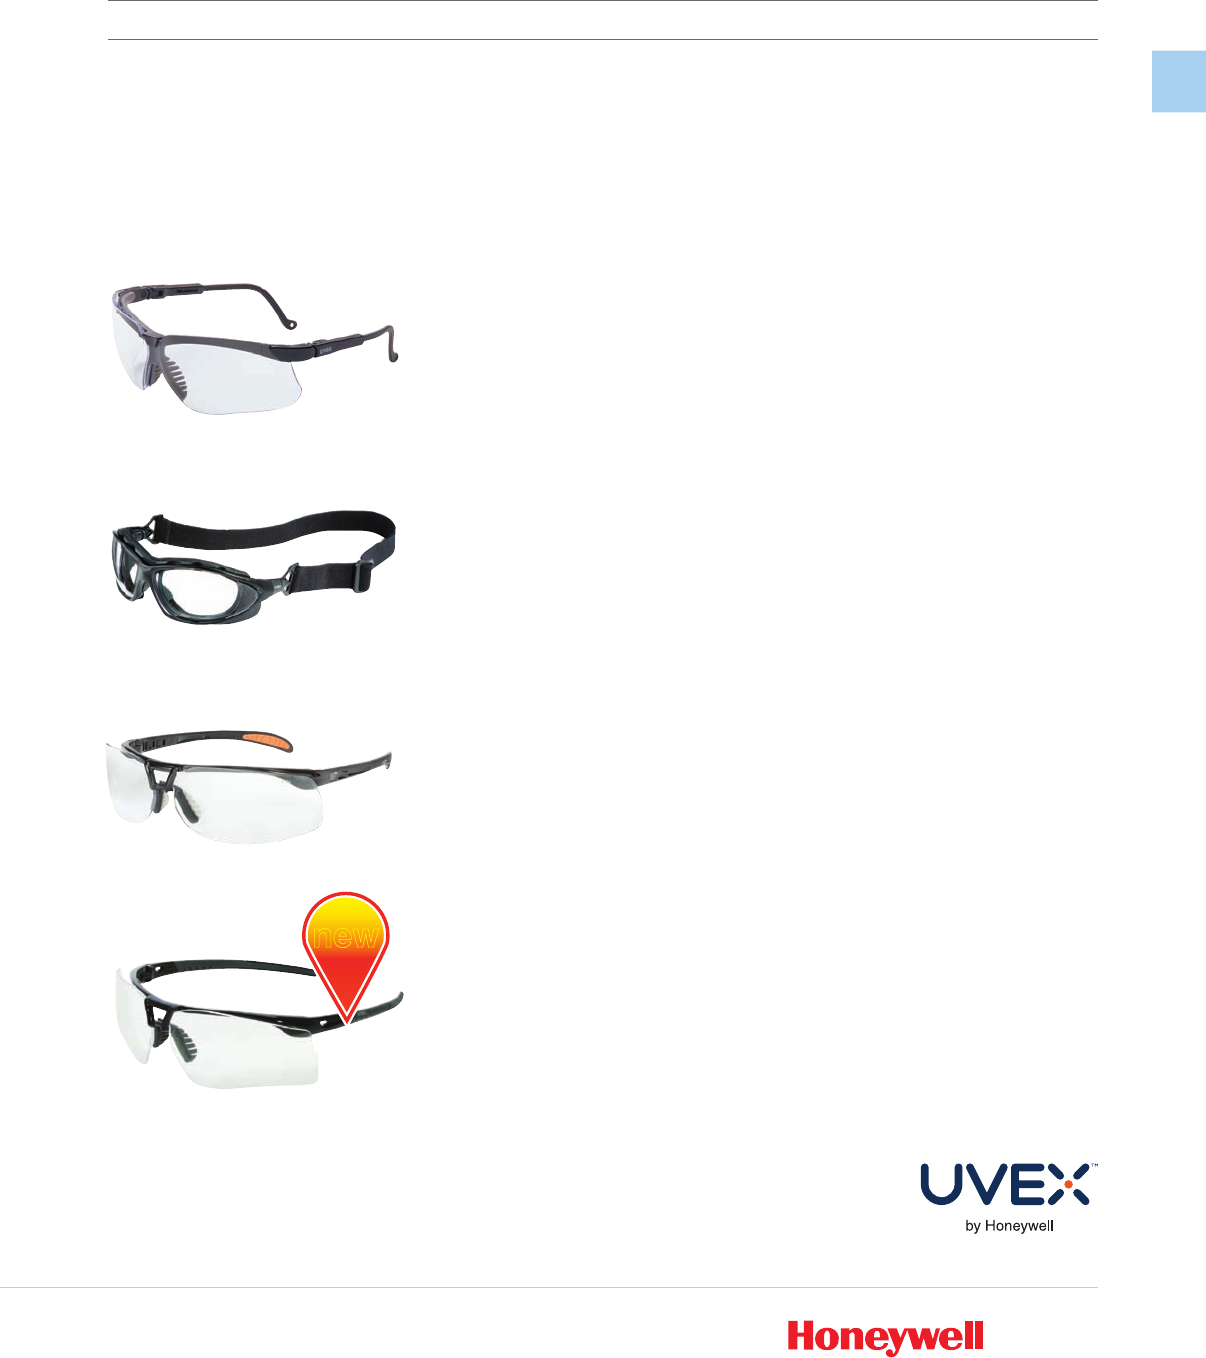 HONEYWELL UVEX S1500 Mercury™ Safety Glasses With Clear Scratch-Resistant Lens